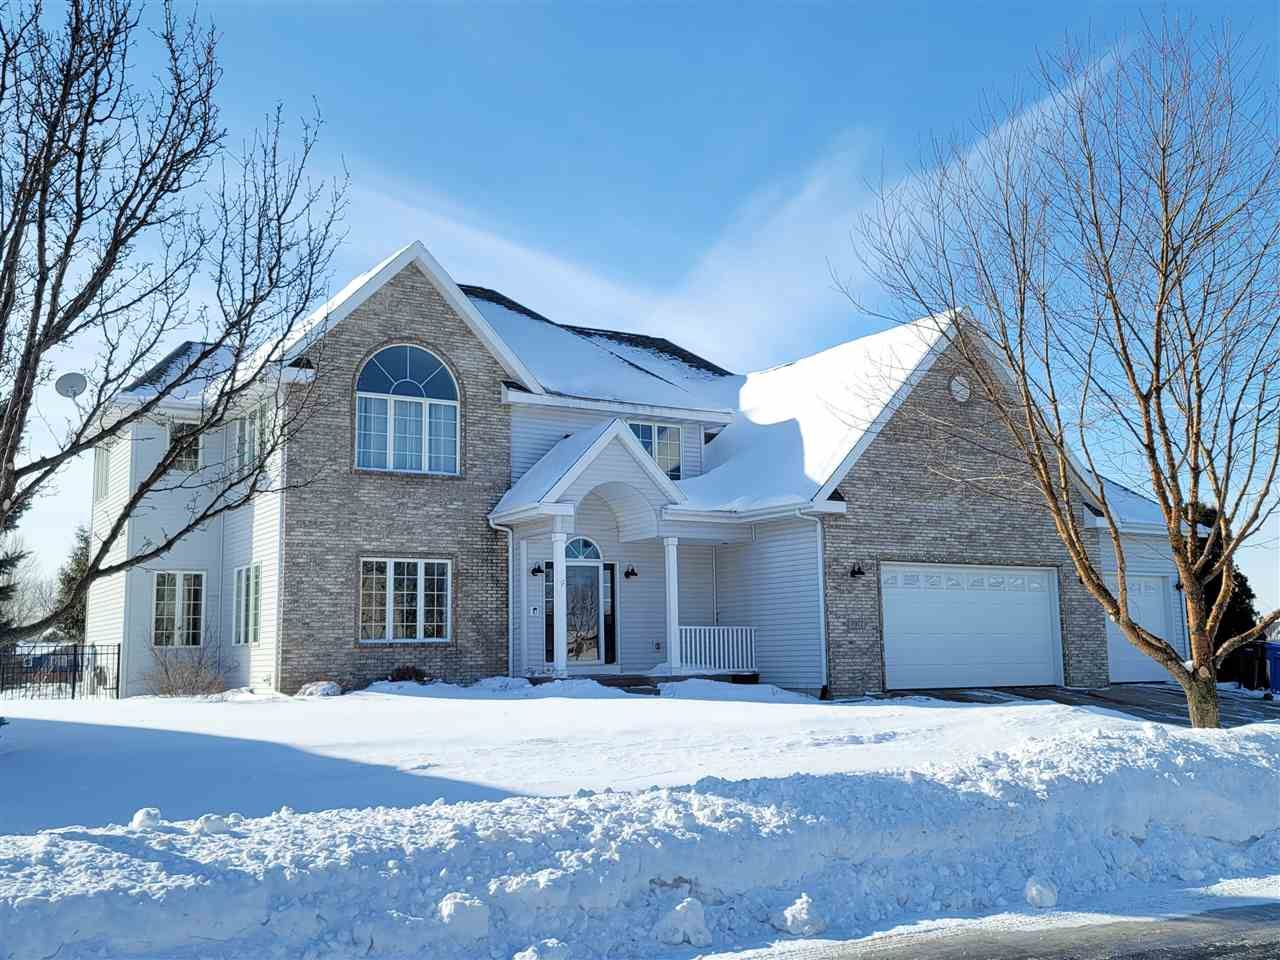 1012 Warrior Ct, Waunakee, WI 53597-3113 - #: 1902519